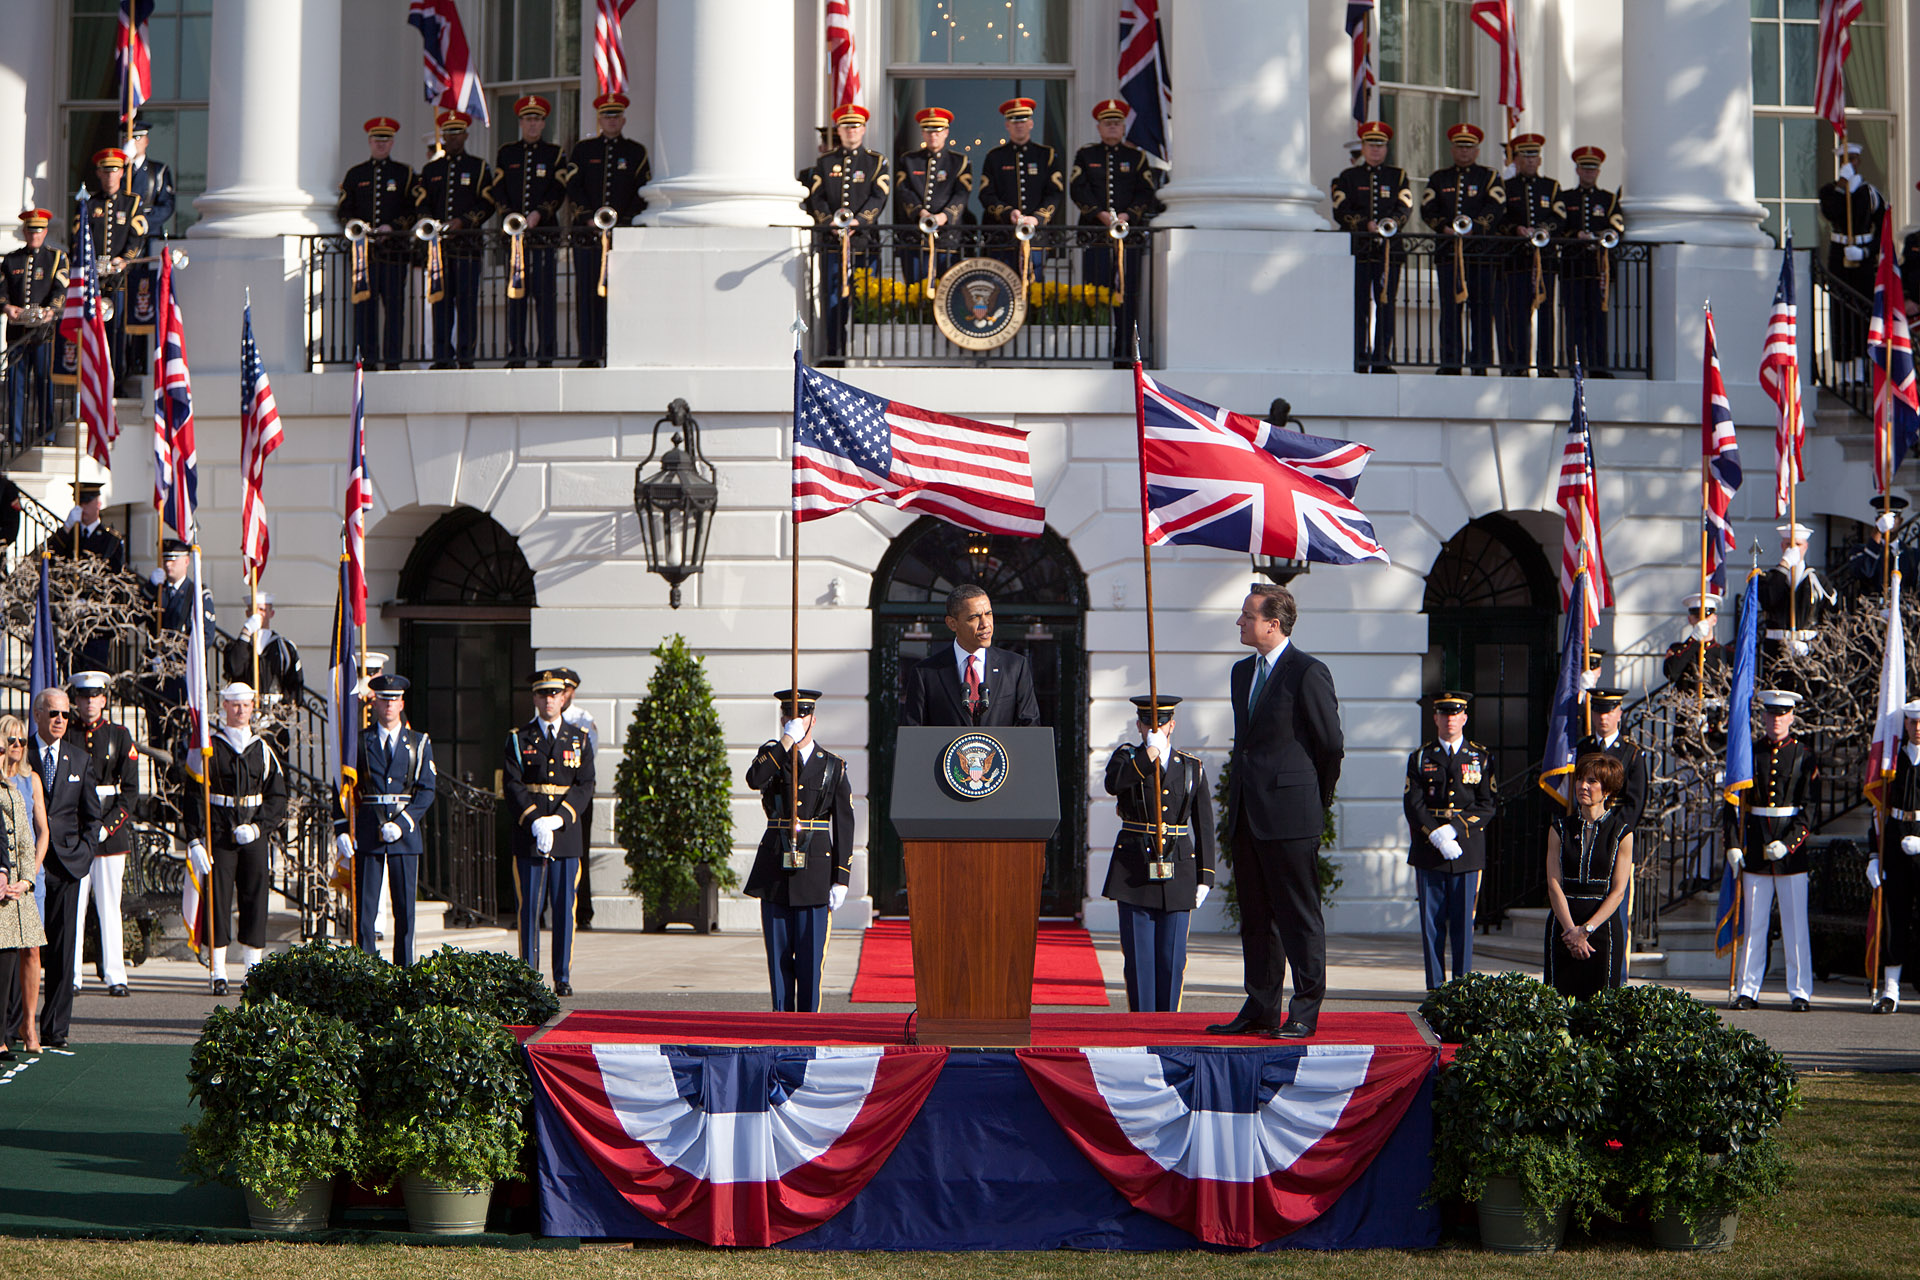 President Barack Obama delivers remarks during an Official Arrival Ceremony (March 14, 2012)